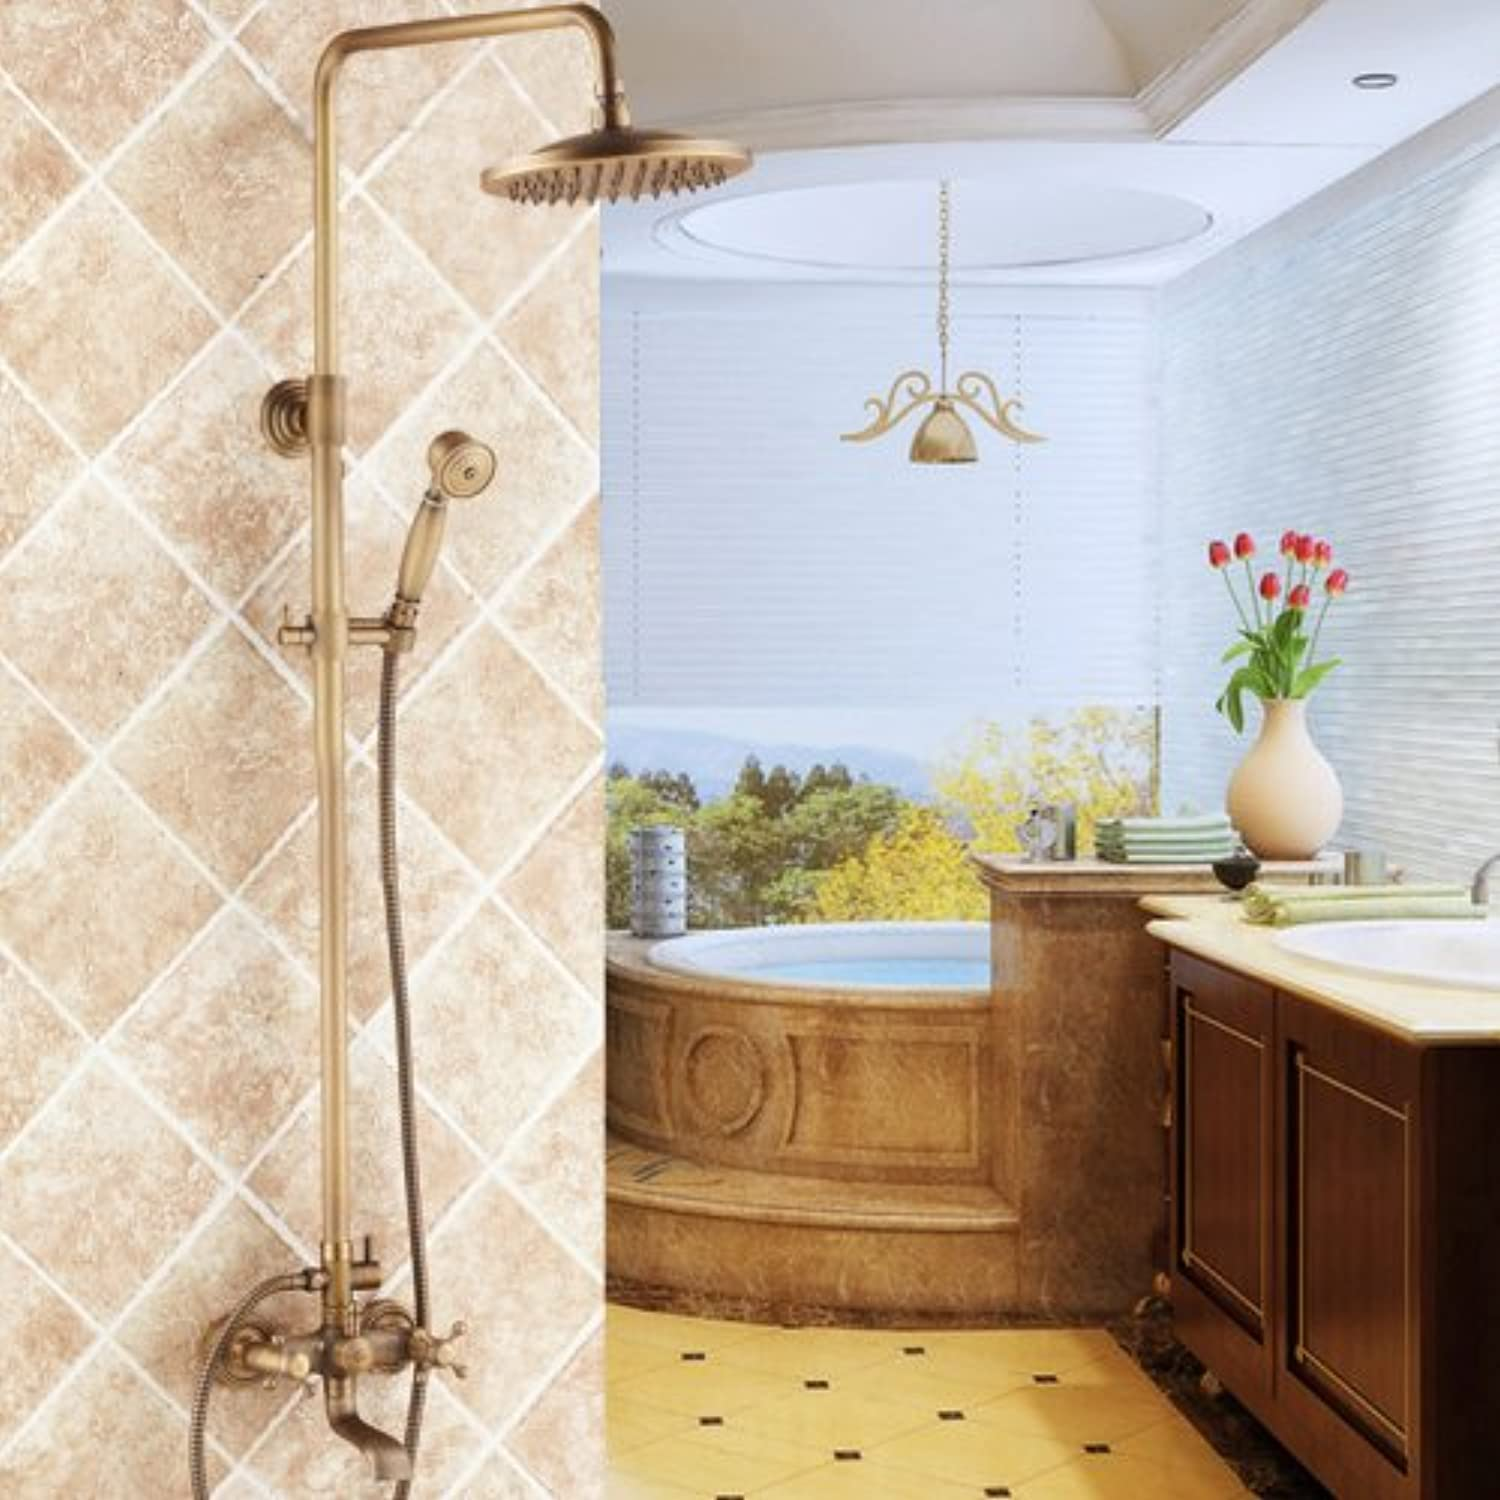 Lightinthebox Vintage Bathroom Shower System Antique Brass Tub Shower Faucet with 8 inch Shower Head + Hand Shower Two Handles Three Holes Shower Head